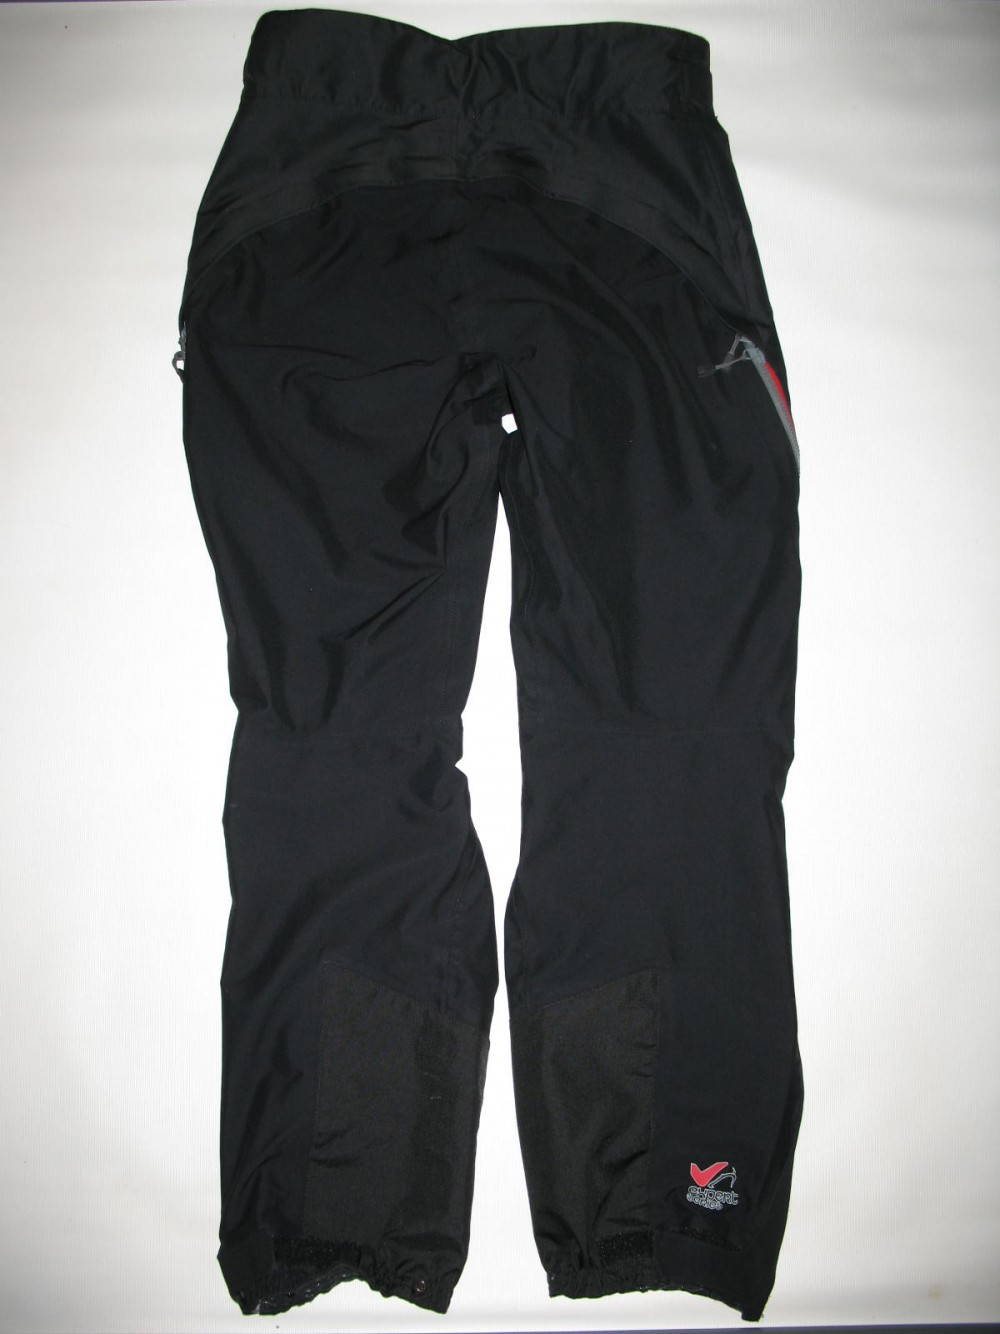 Штаны MILLET grand mixte pants (размер L) - 2